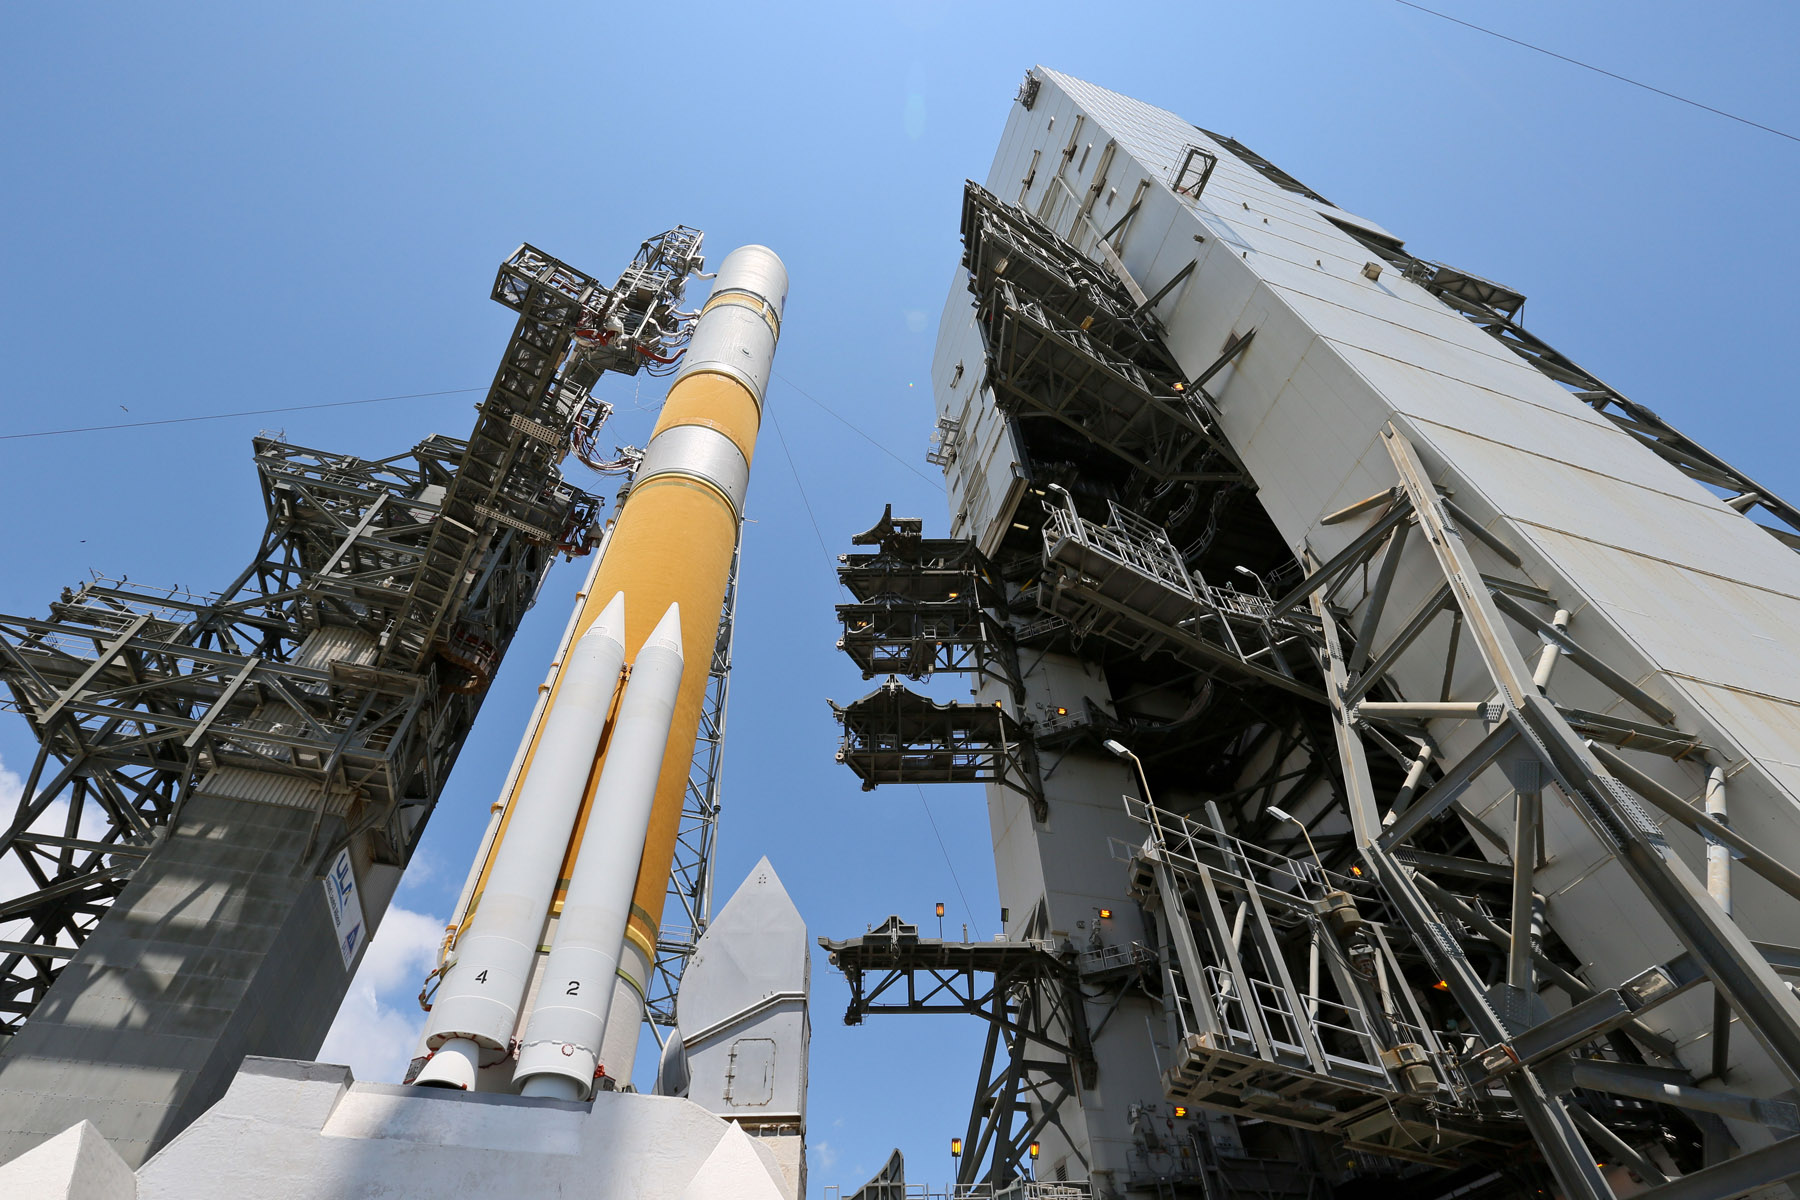 Looking Up: Delta 4 Rocket with WGS-5 Satellite